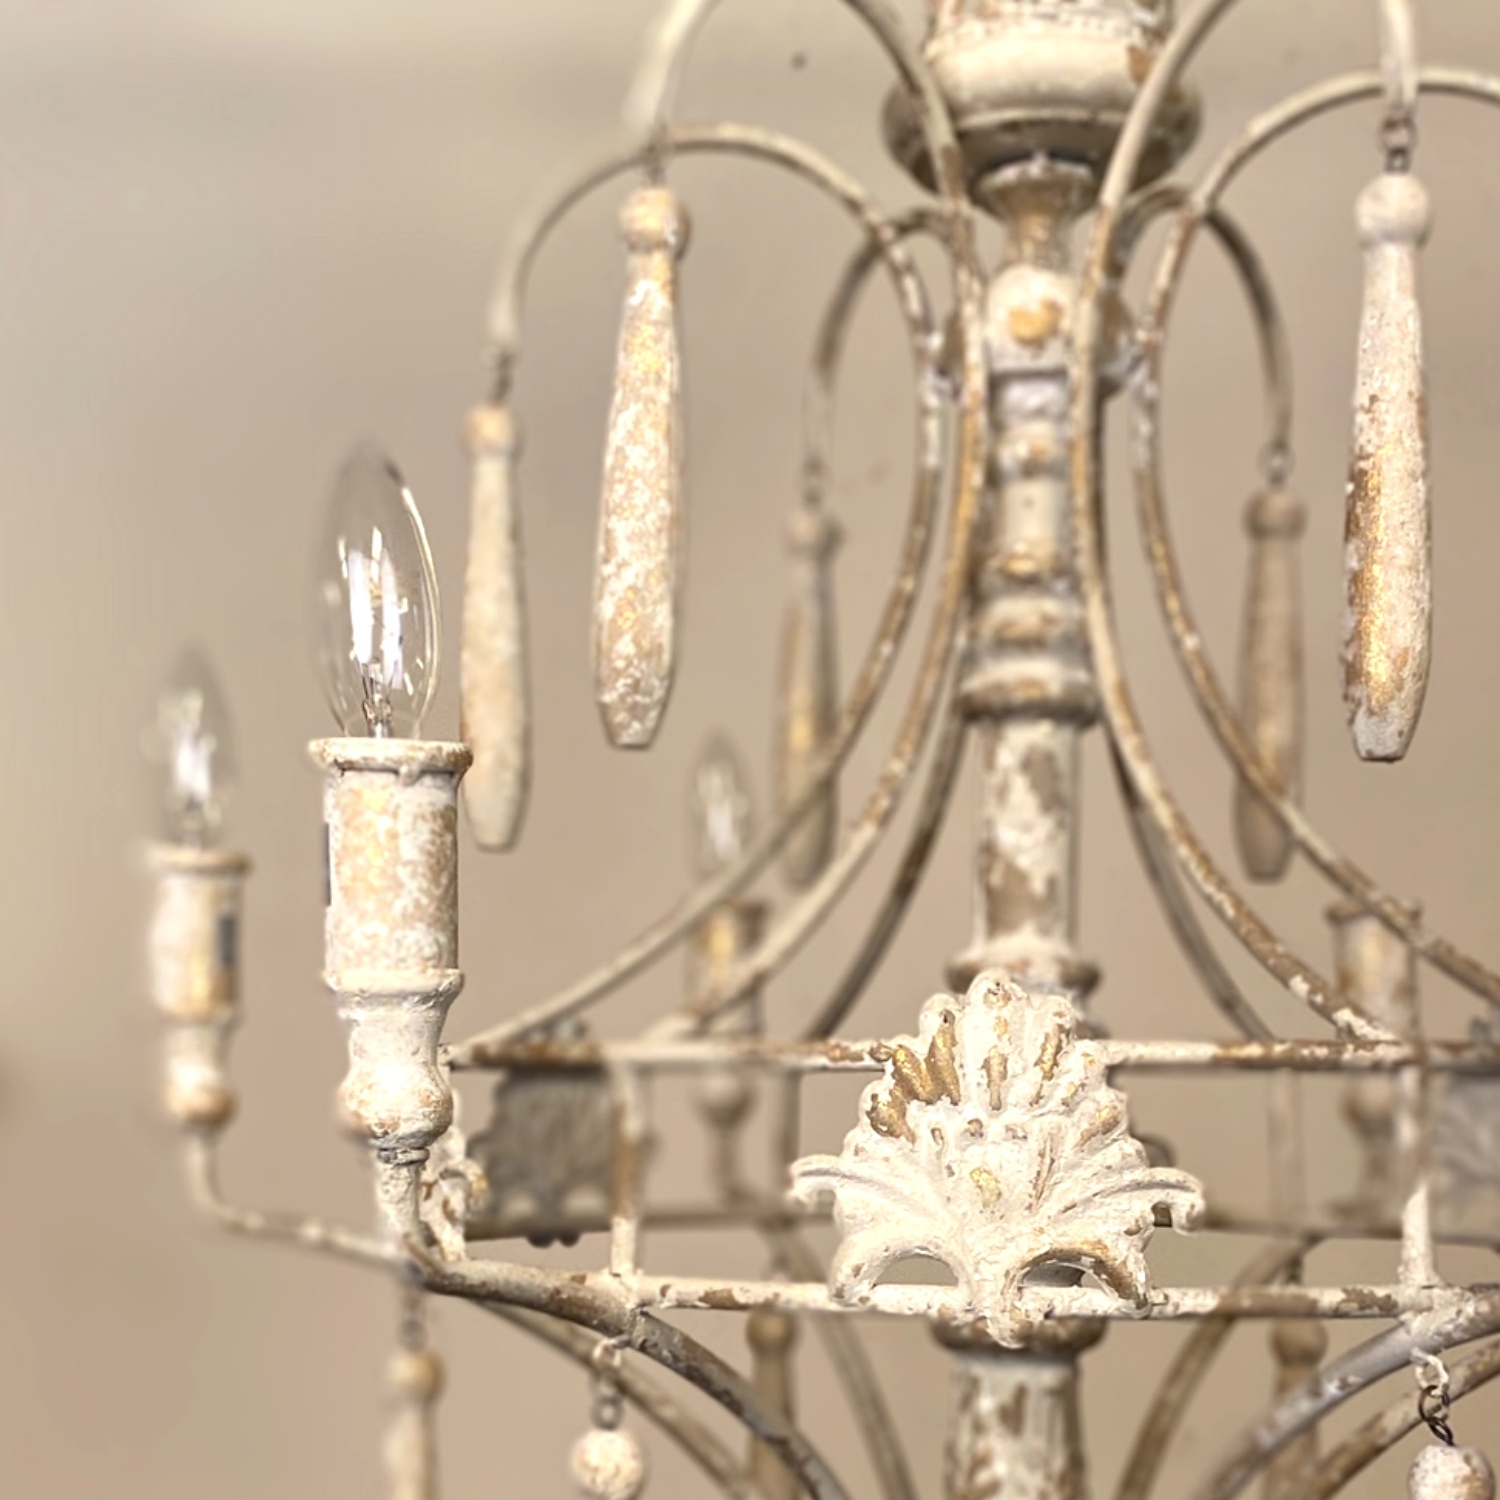 How to Use Shabby Chic Chandeliers